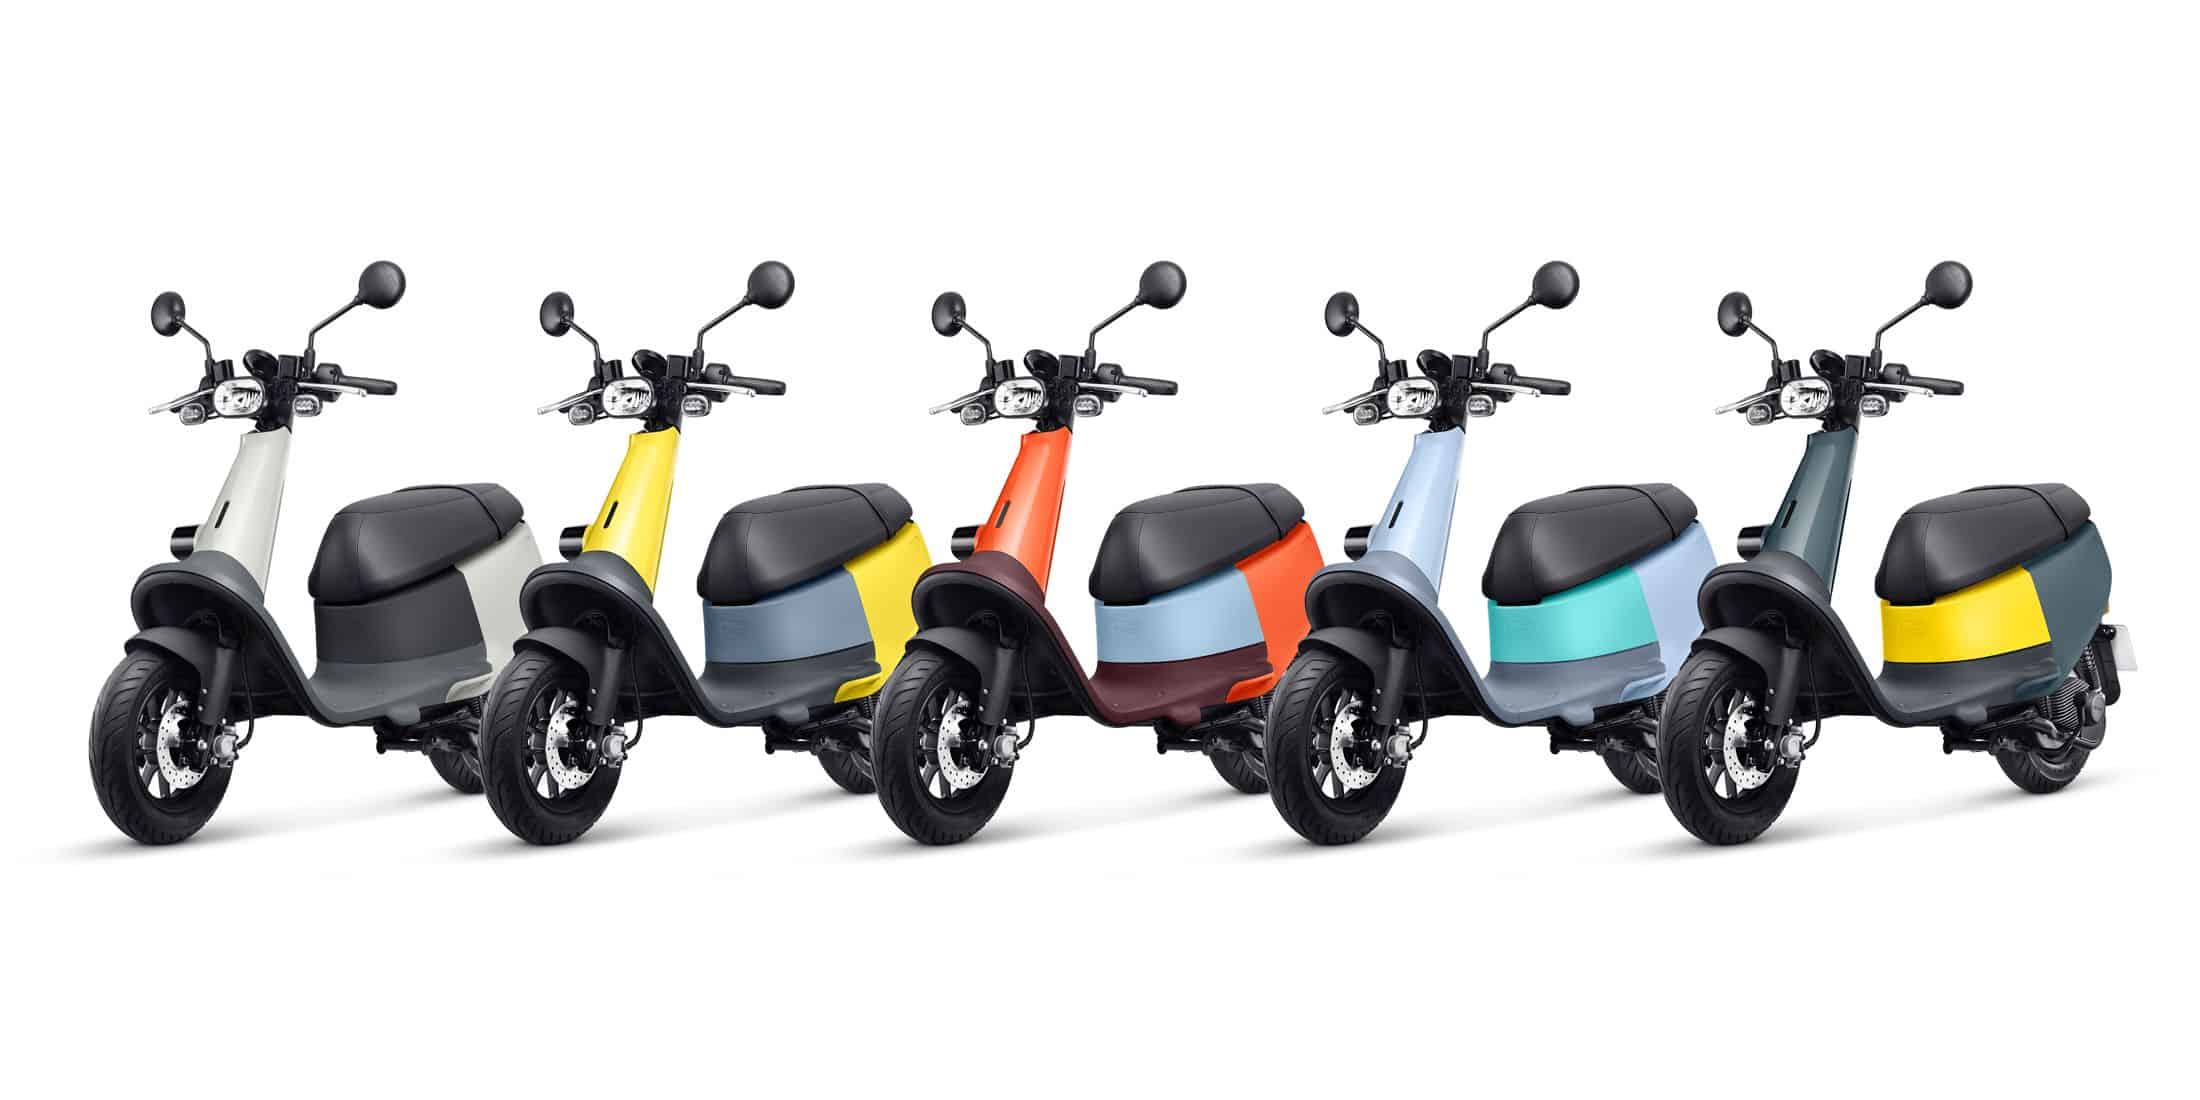 Gogoro launches its latest electric scooter, Gorgo VIVA